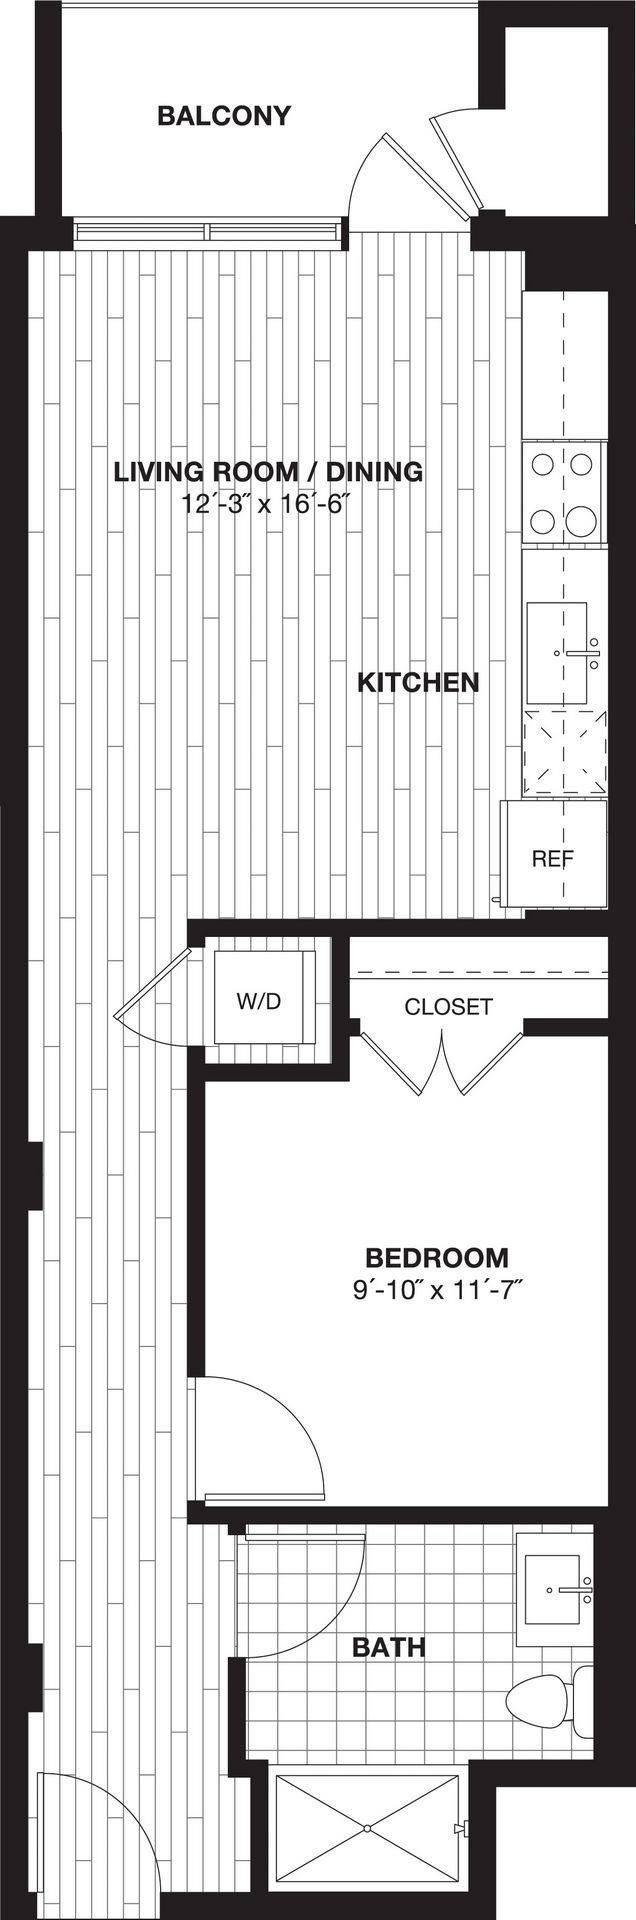 A 2D drawing of the S5 floor plan